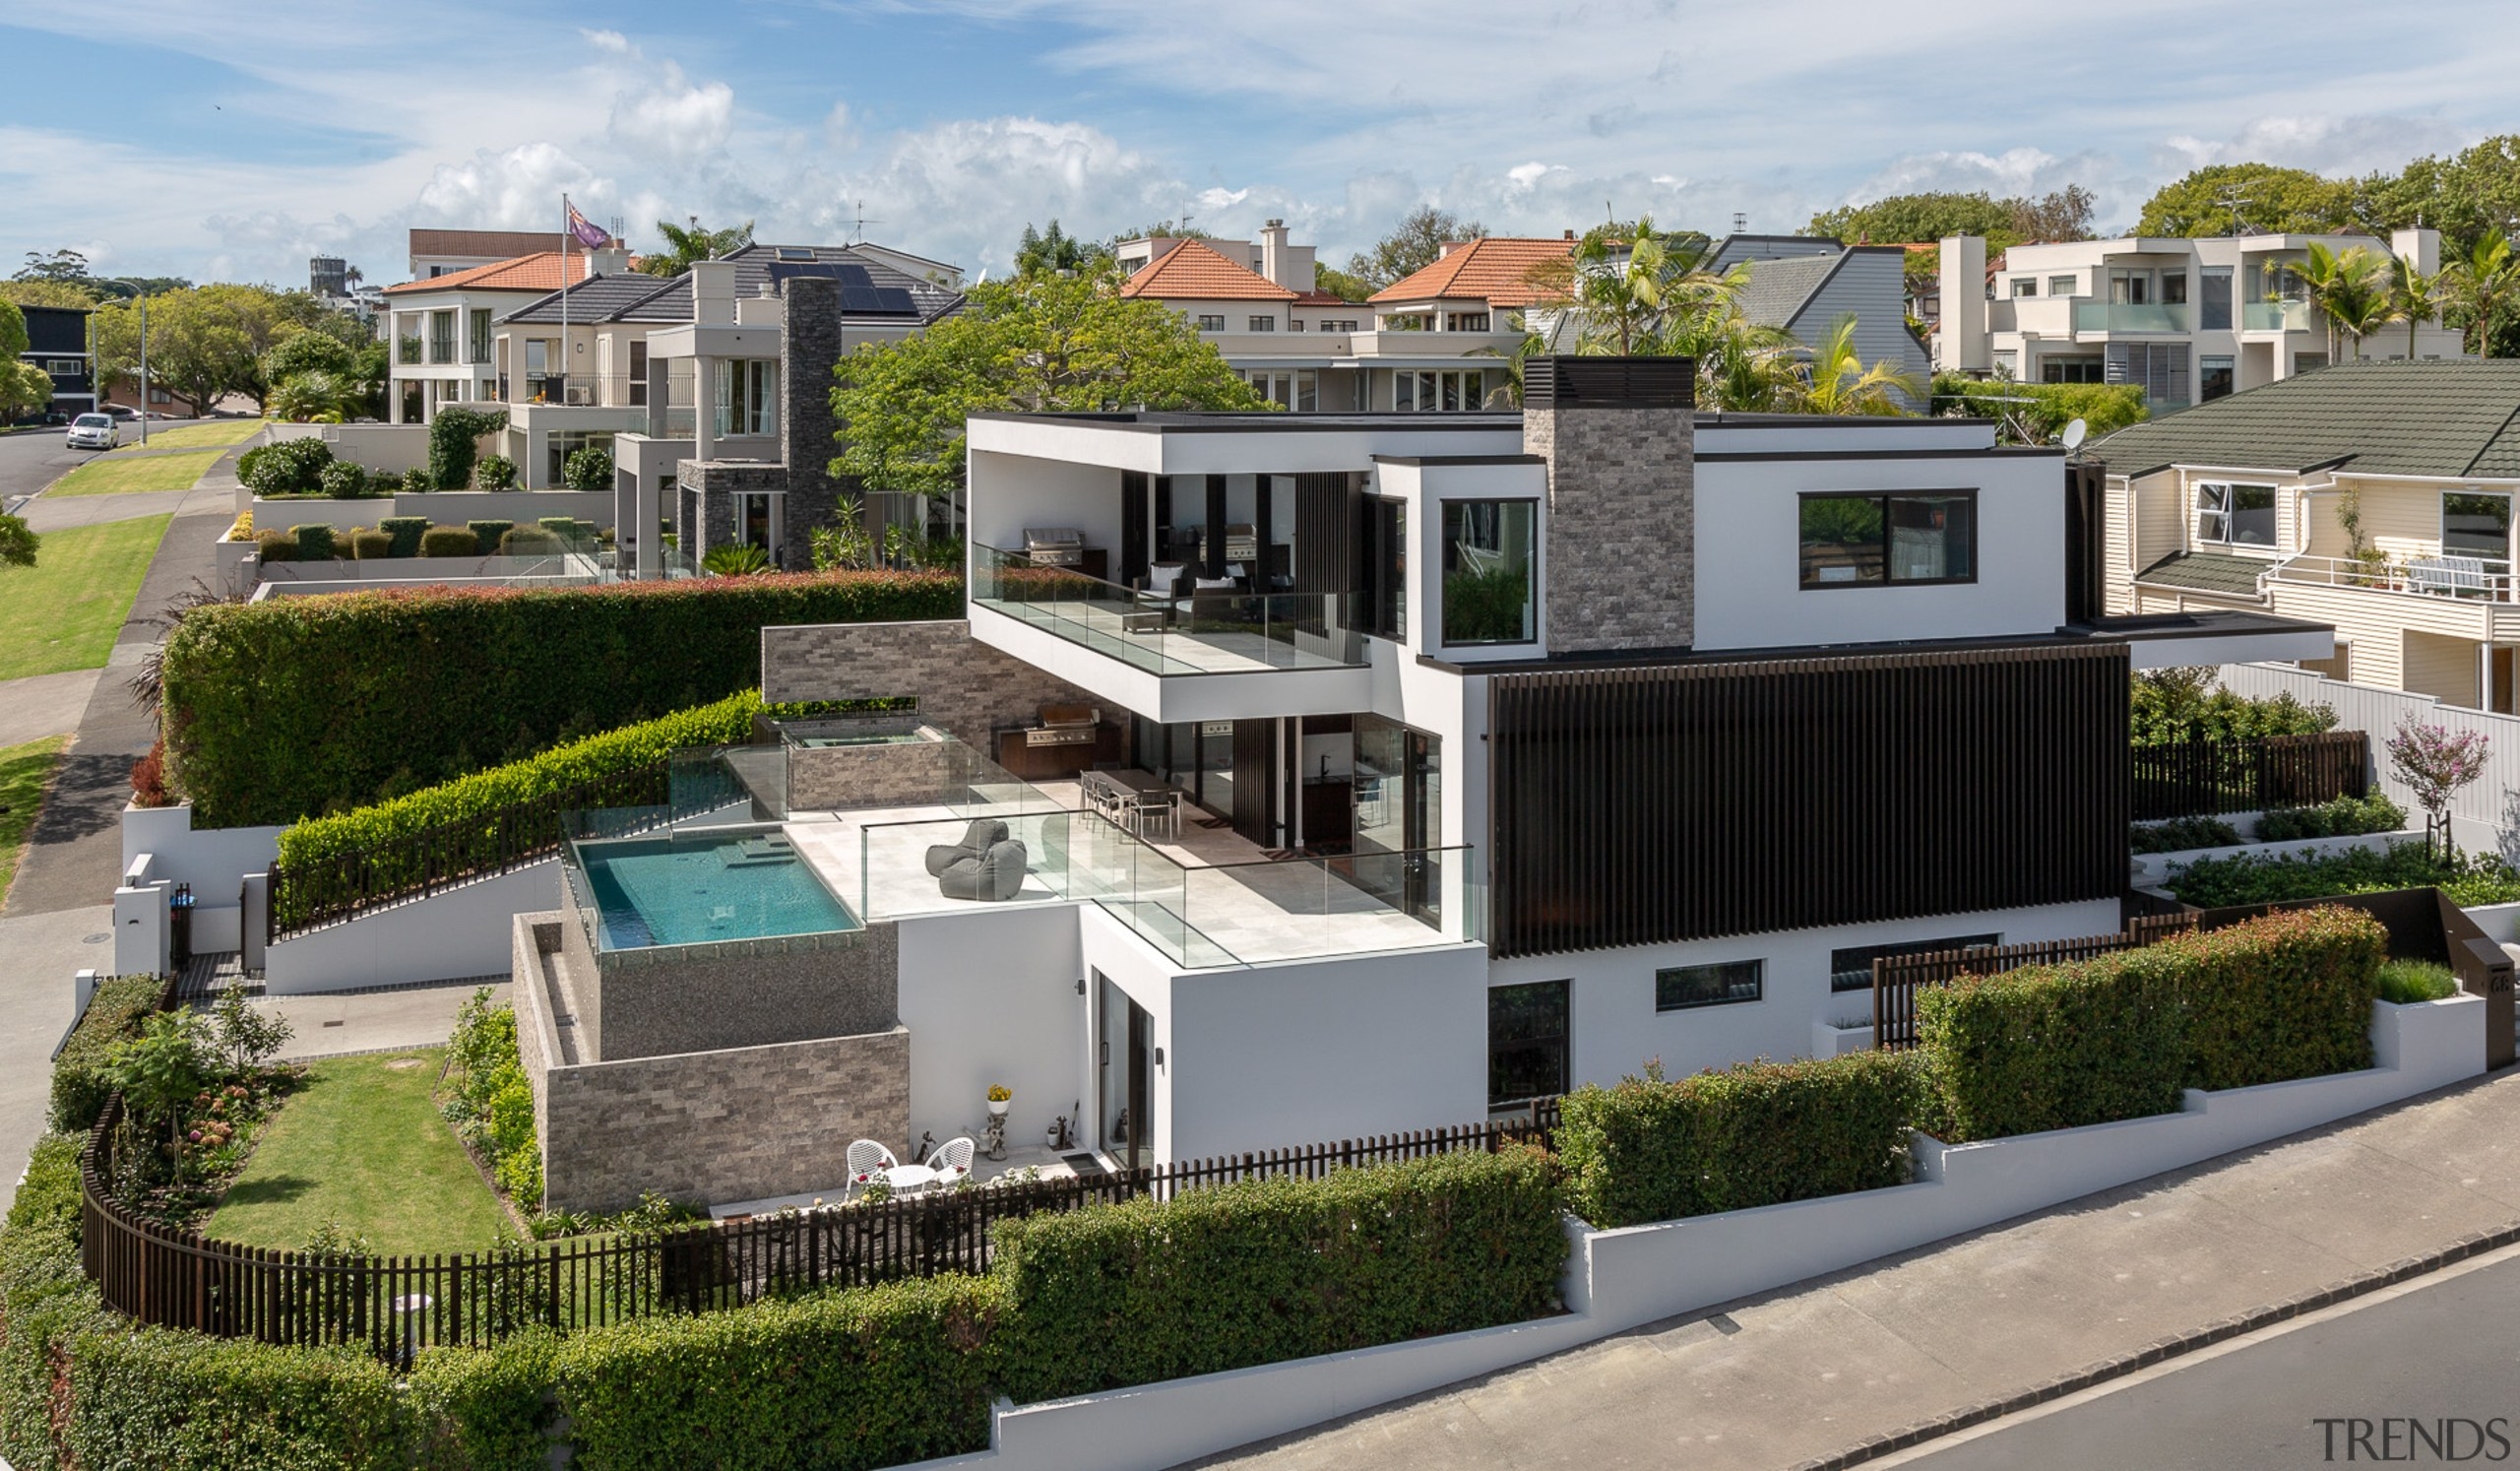 Jessop Architects – Runner-up – 2019 TIDA Homes apartment, architecture, building, design, estate, facade, home, house, mansion, mixed-use, neighbourhood, project, property, real estate, residential area, roof, suburb, urban design, villa, gray